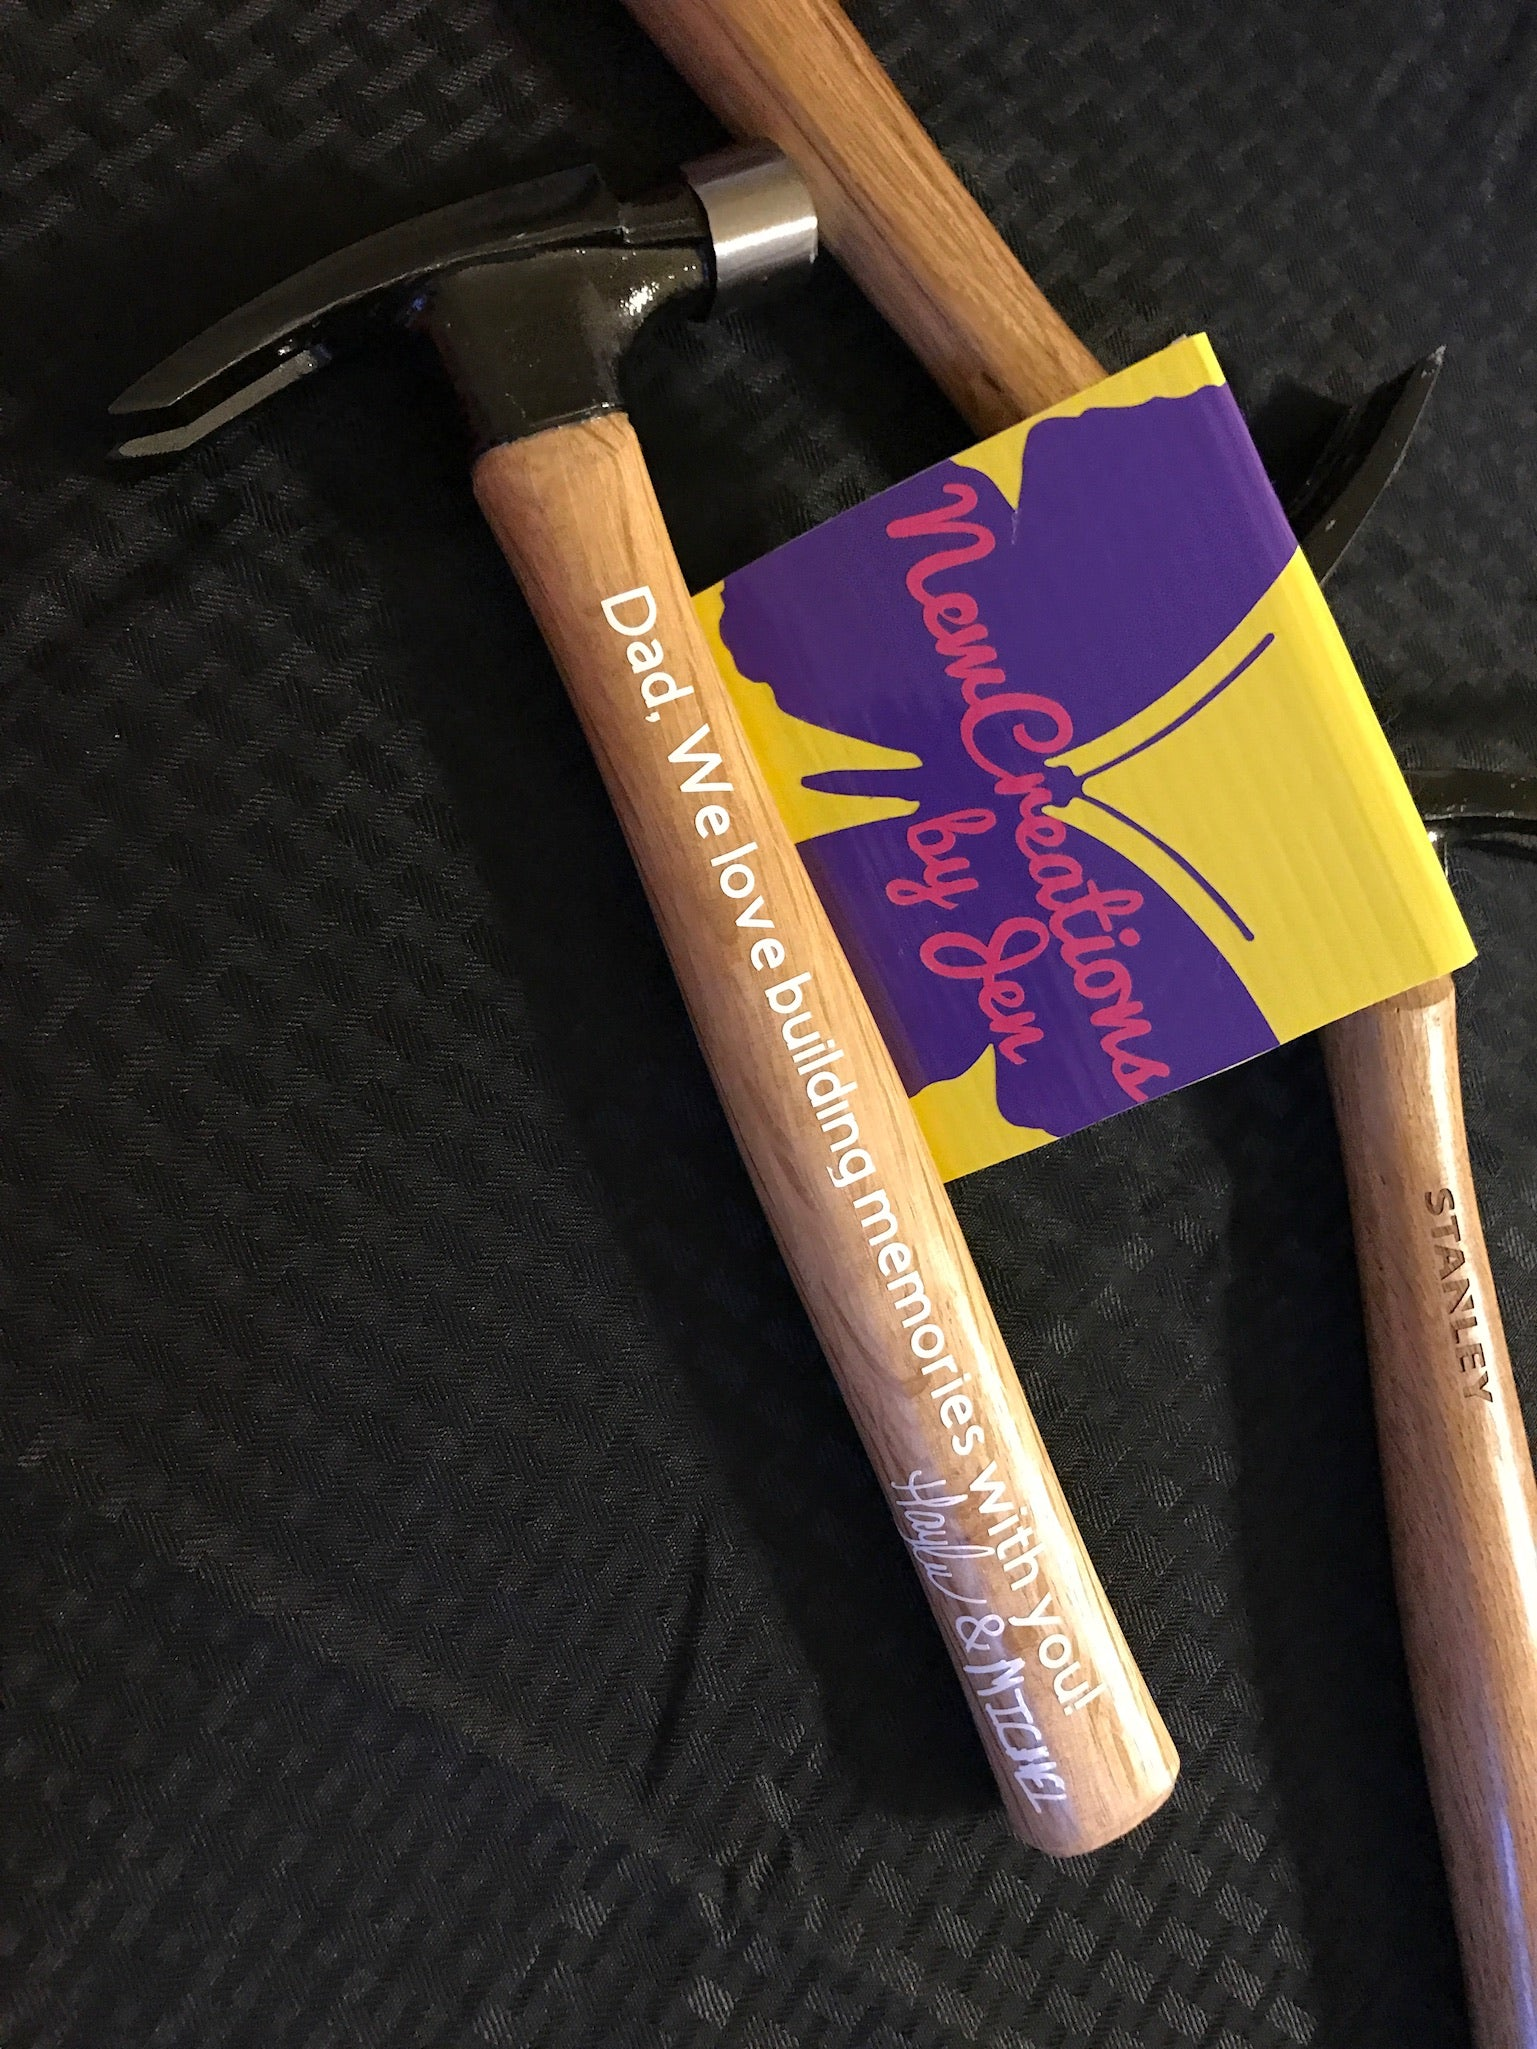 Personalized Hammer - GREAT GIFT!